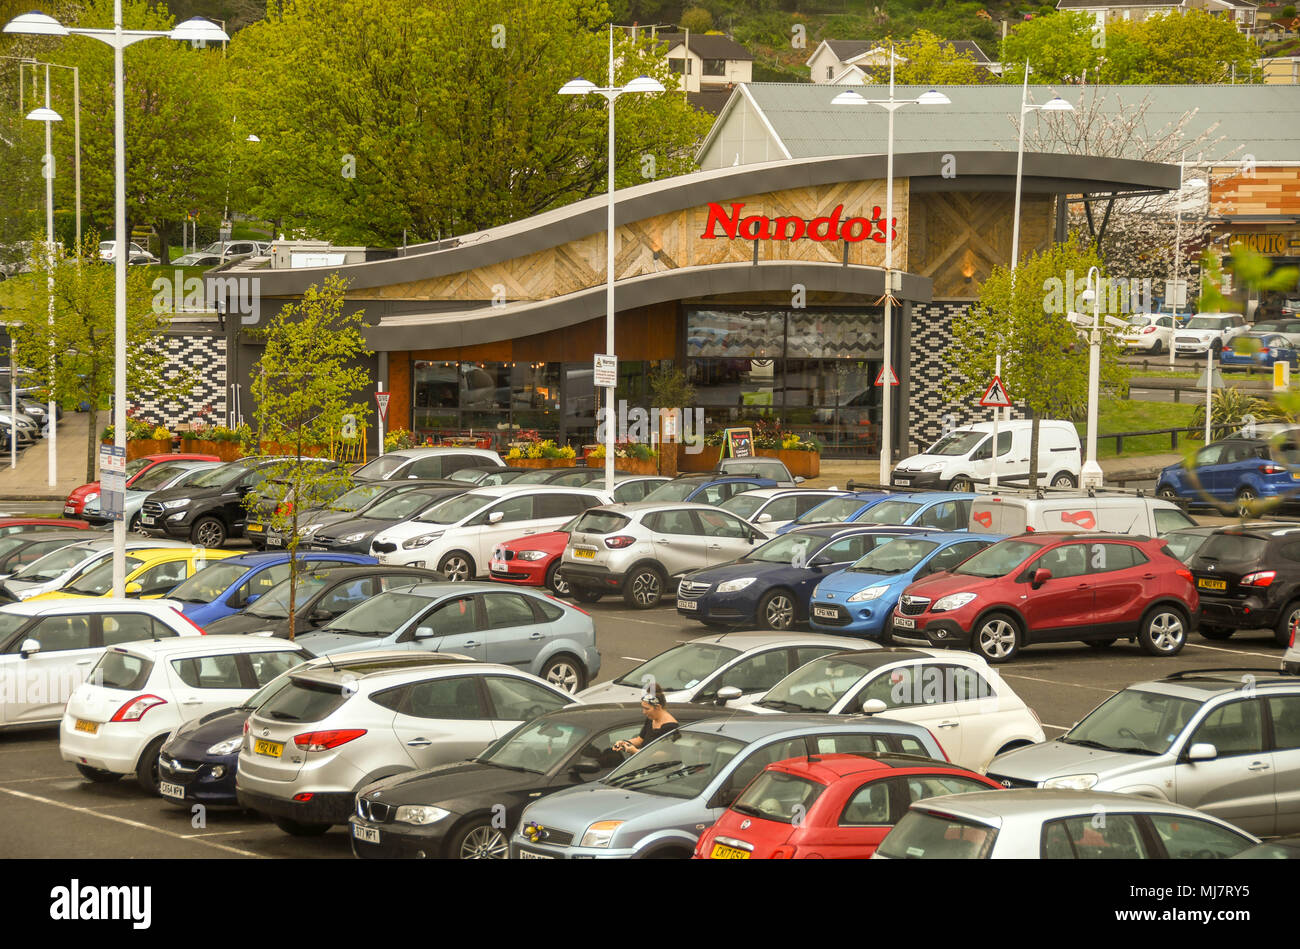 Branch of the Nando's chicken restaurant chain in Talbot Green Shopping Park with cars parked in the foreground - Stock Image